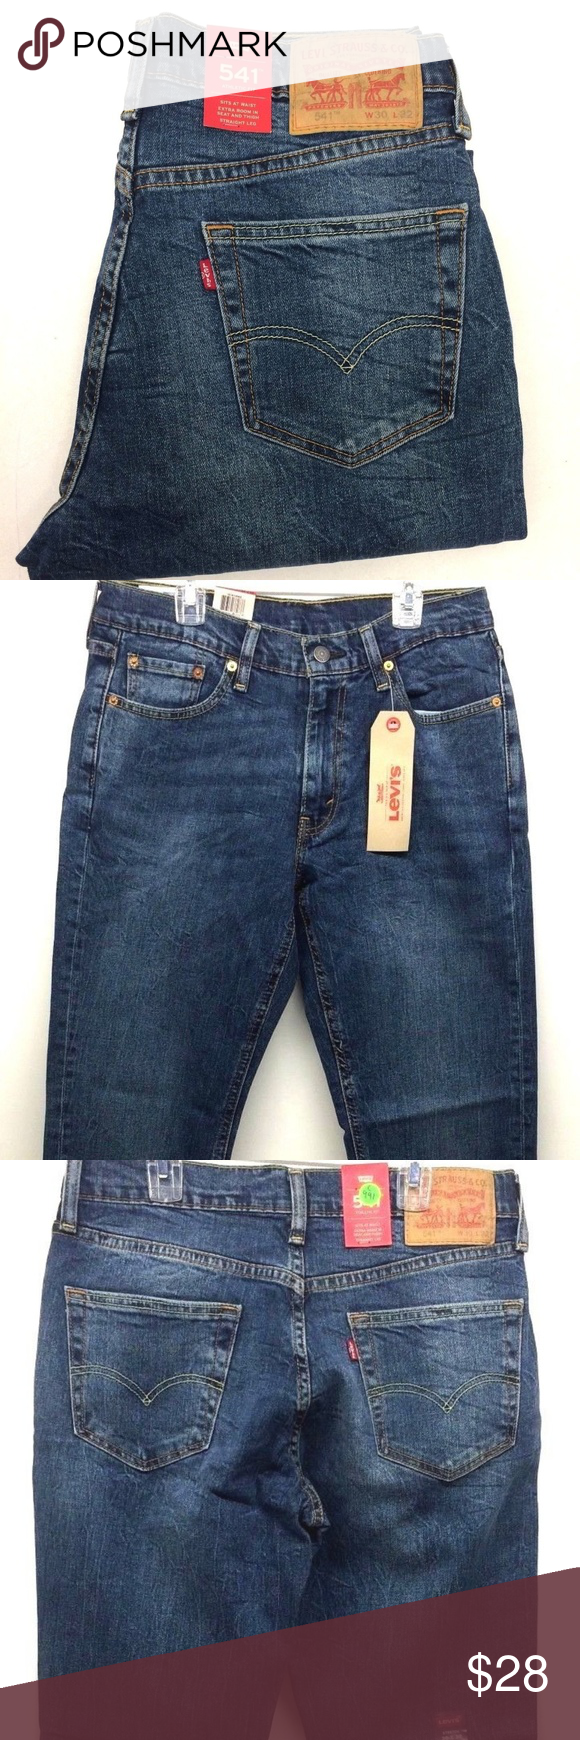 1a41c424 Levi's Men's 541 Athletic Fit Stretch Jeans 30x32 Inspired by professional  athletes and designed for you